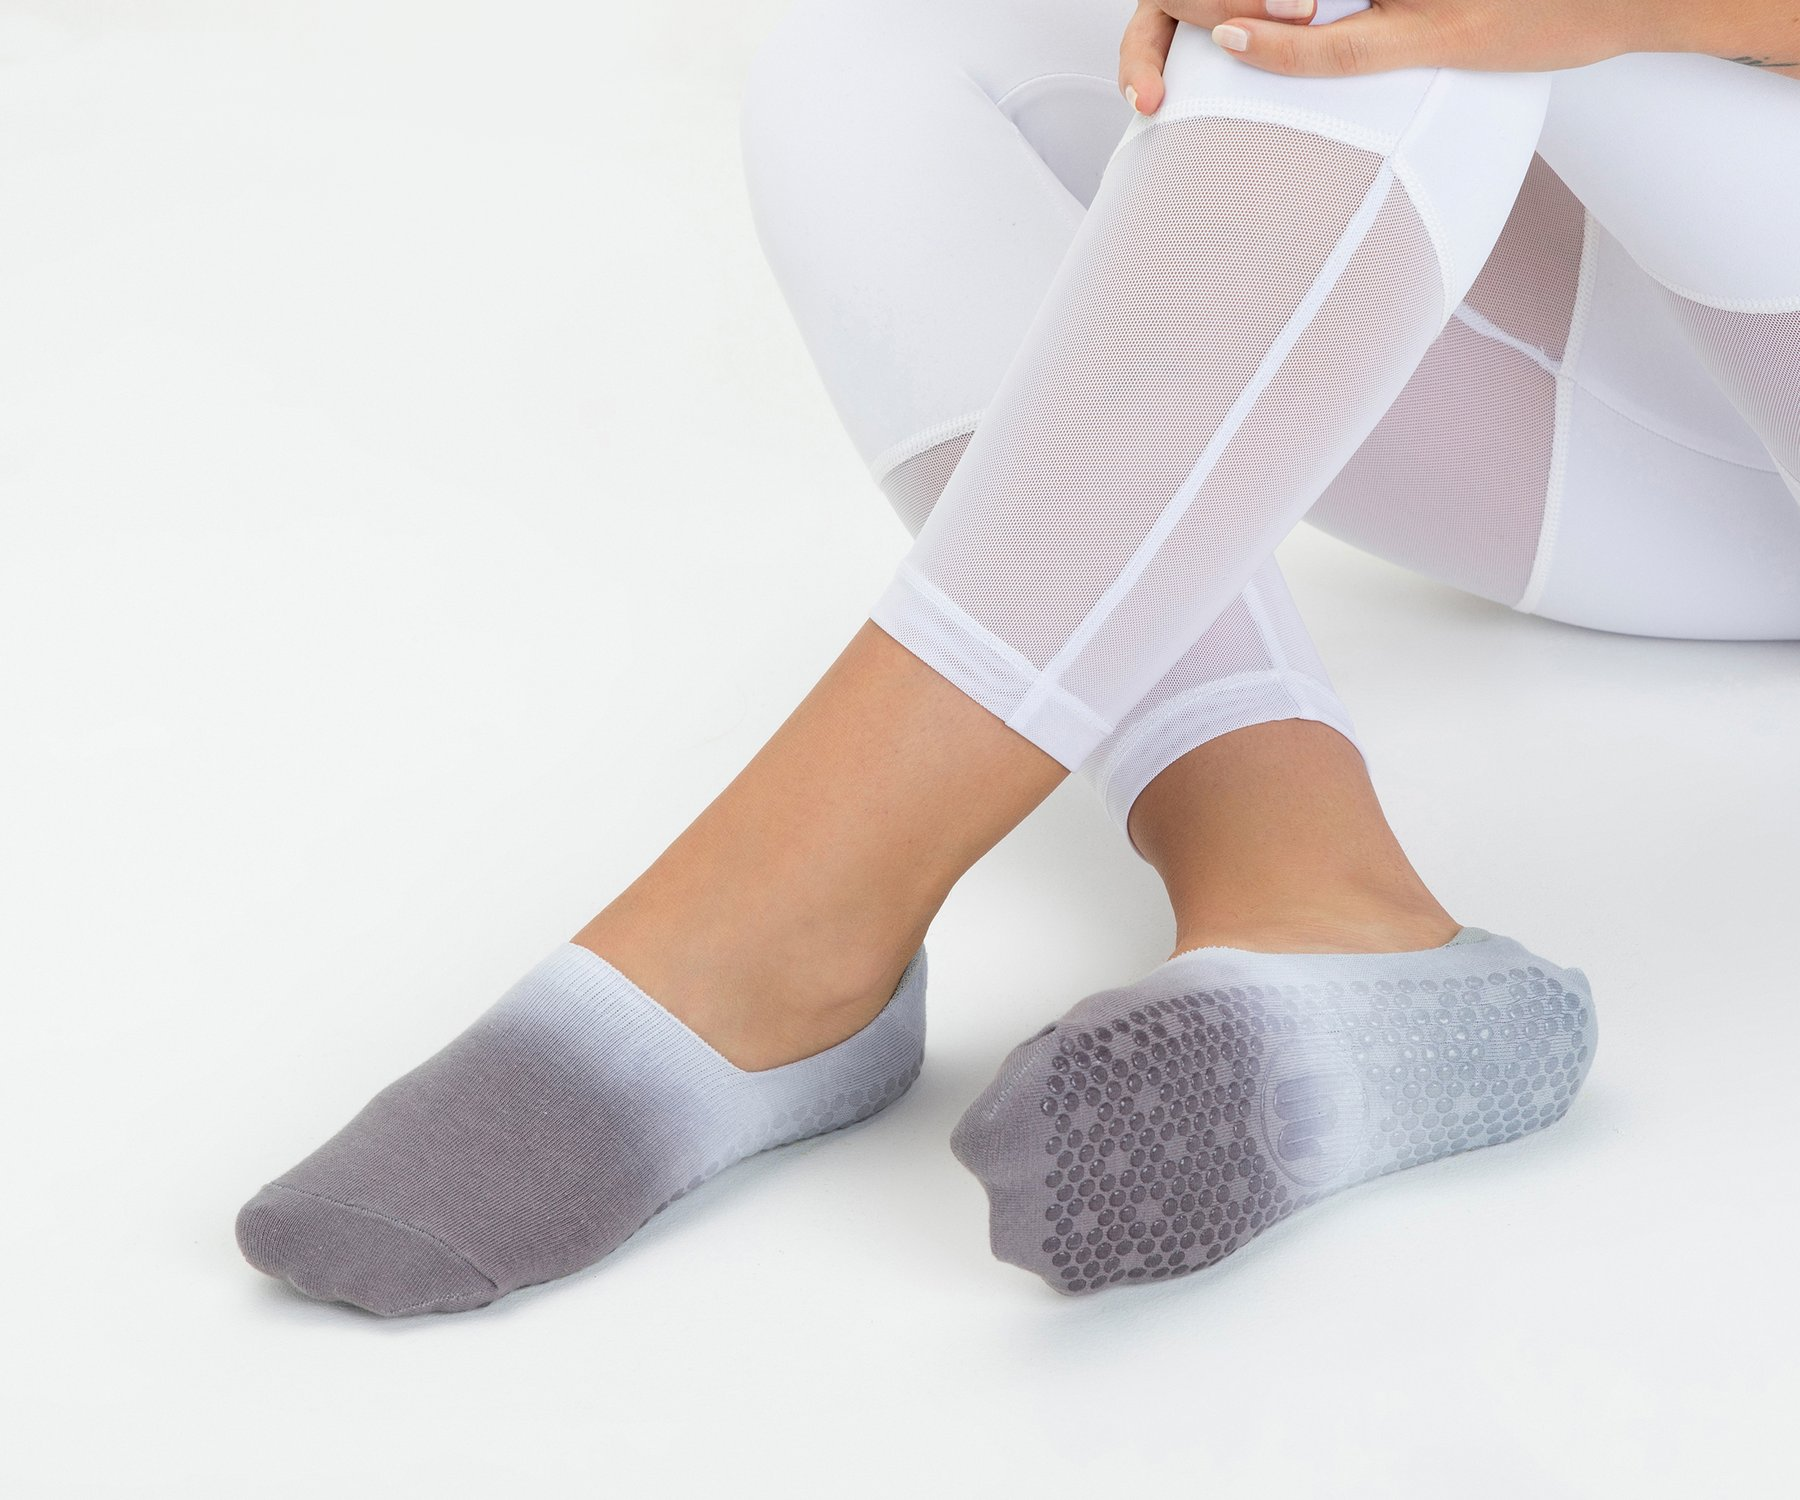 Barely There Footlet in Bondi Grey - Grip Socks by MoveActive